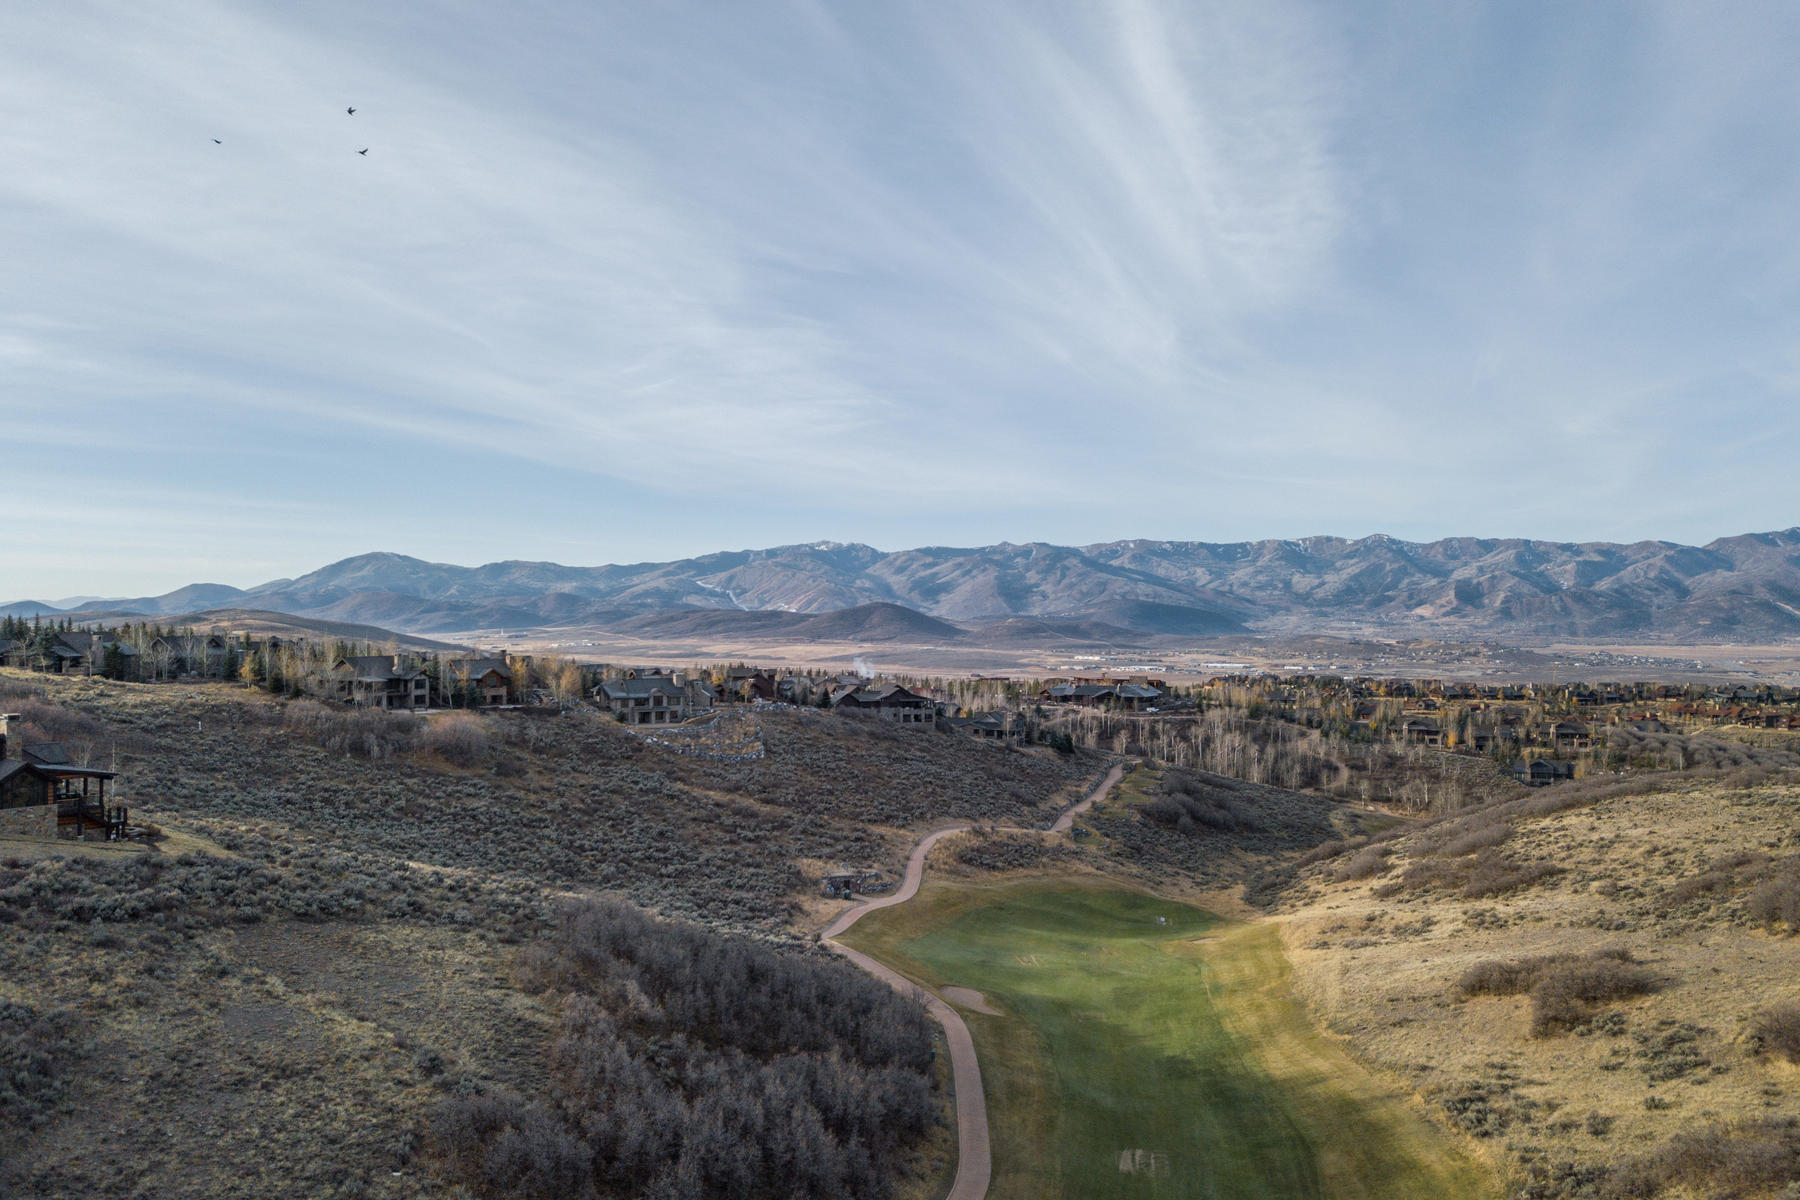 A Plus Location In Promontory 8363 N Ranch Garden Rd Lot 85 Park City, Utah 84098 United States